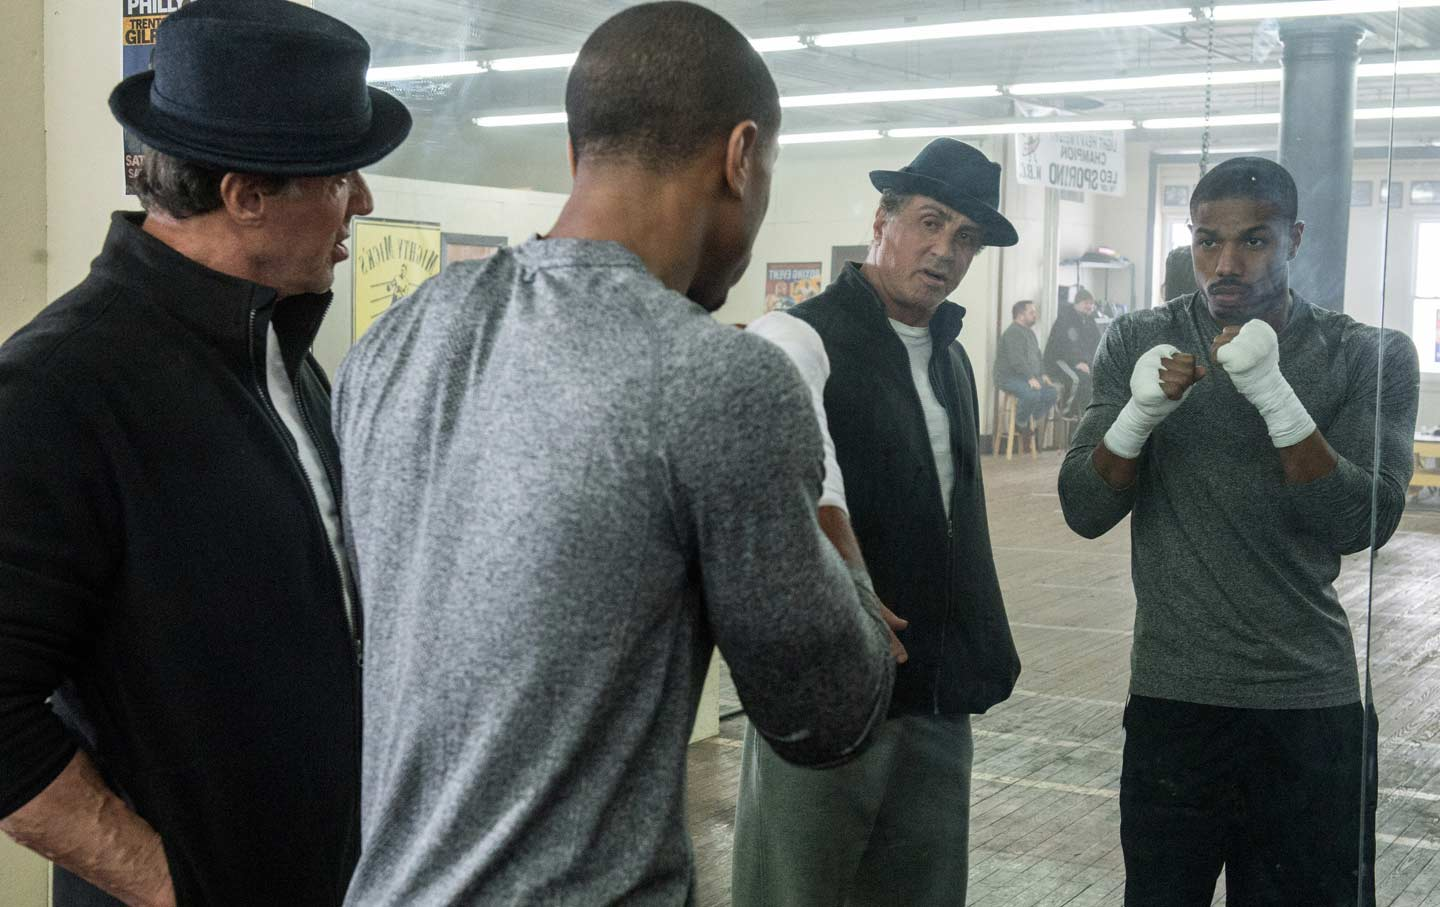 Sylvester Stallone (left) as Rocky Balboa and Michael B. Jordan as Adonis Johnson in Creed.